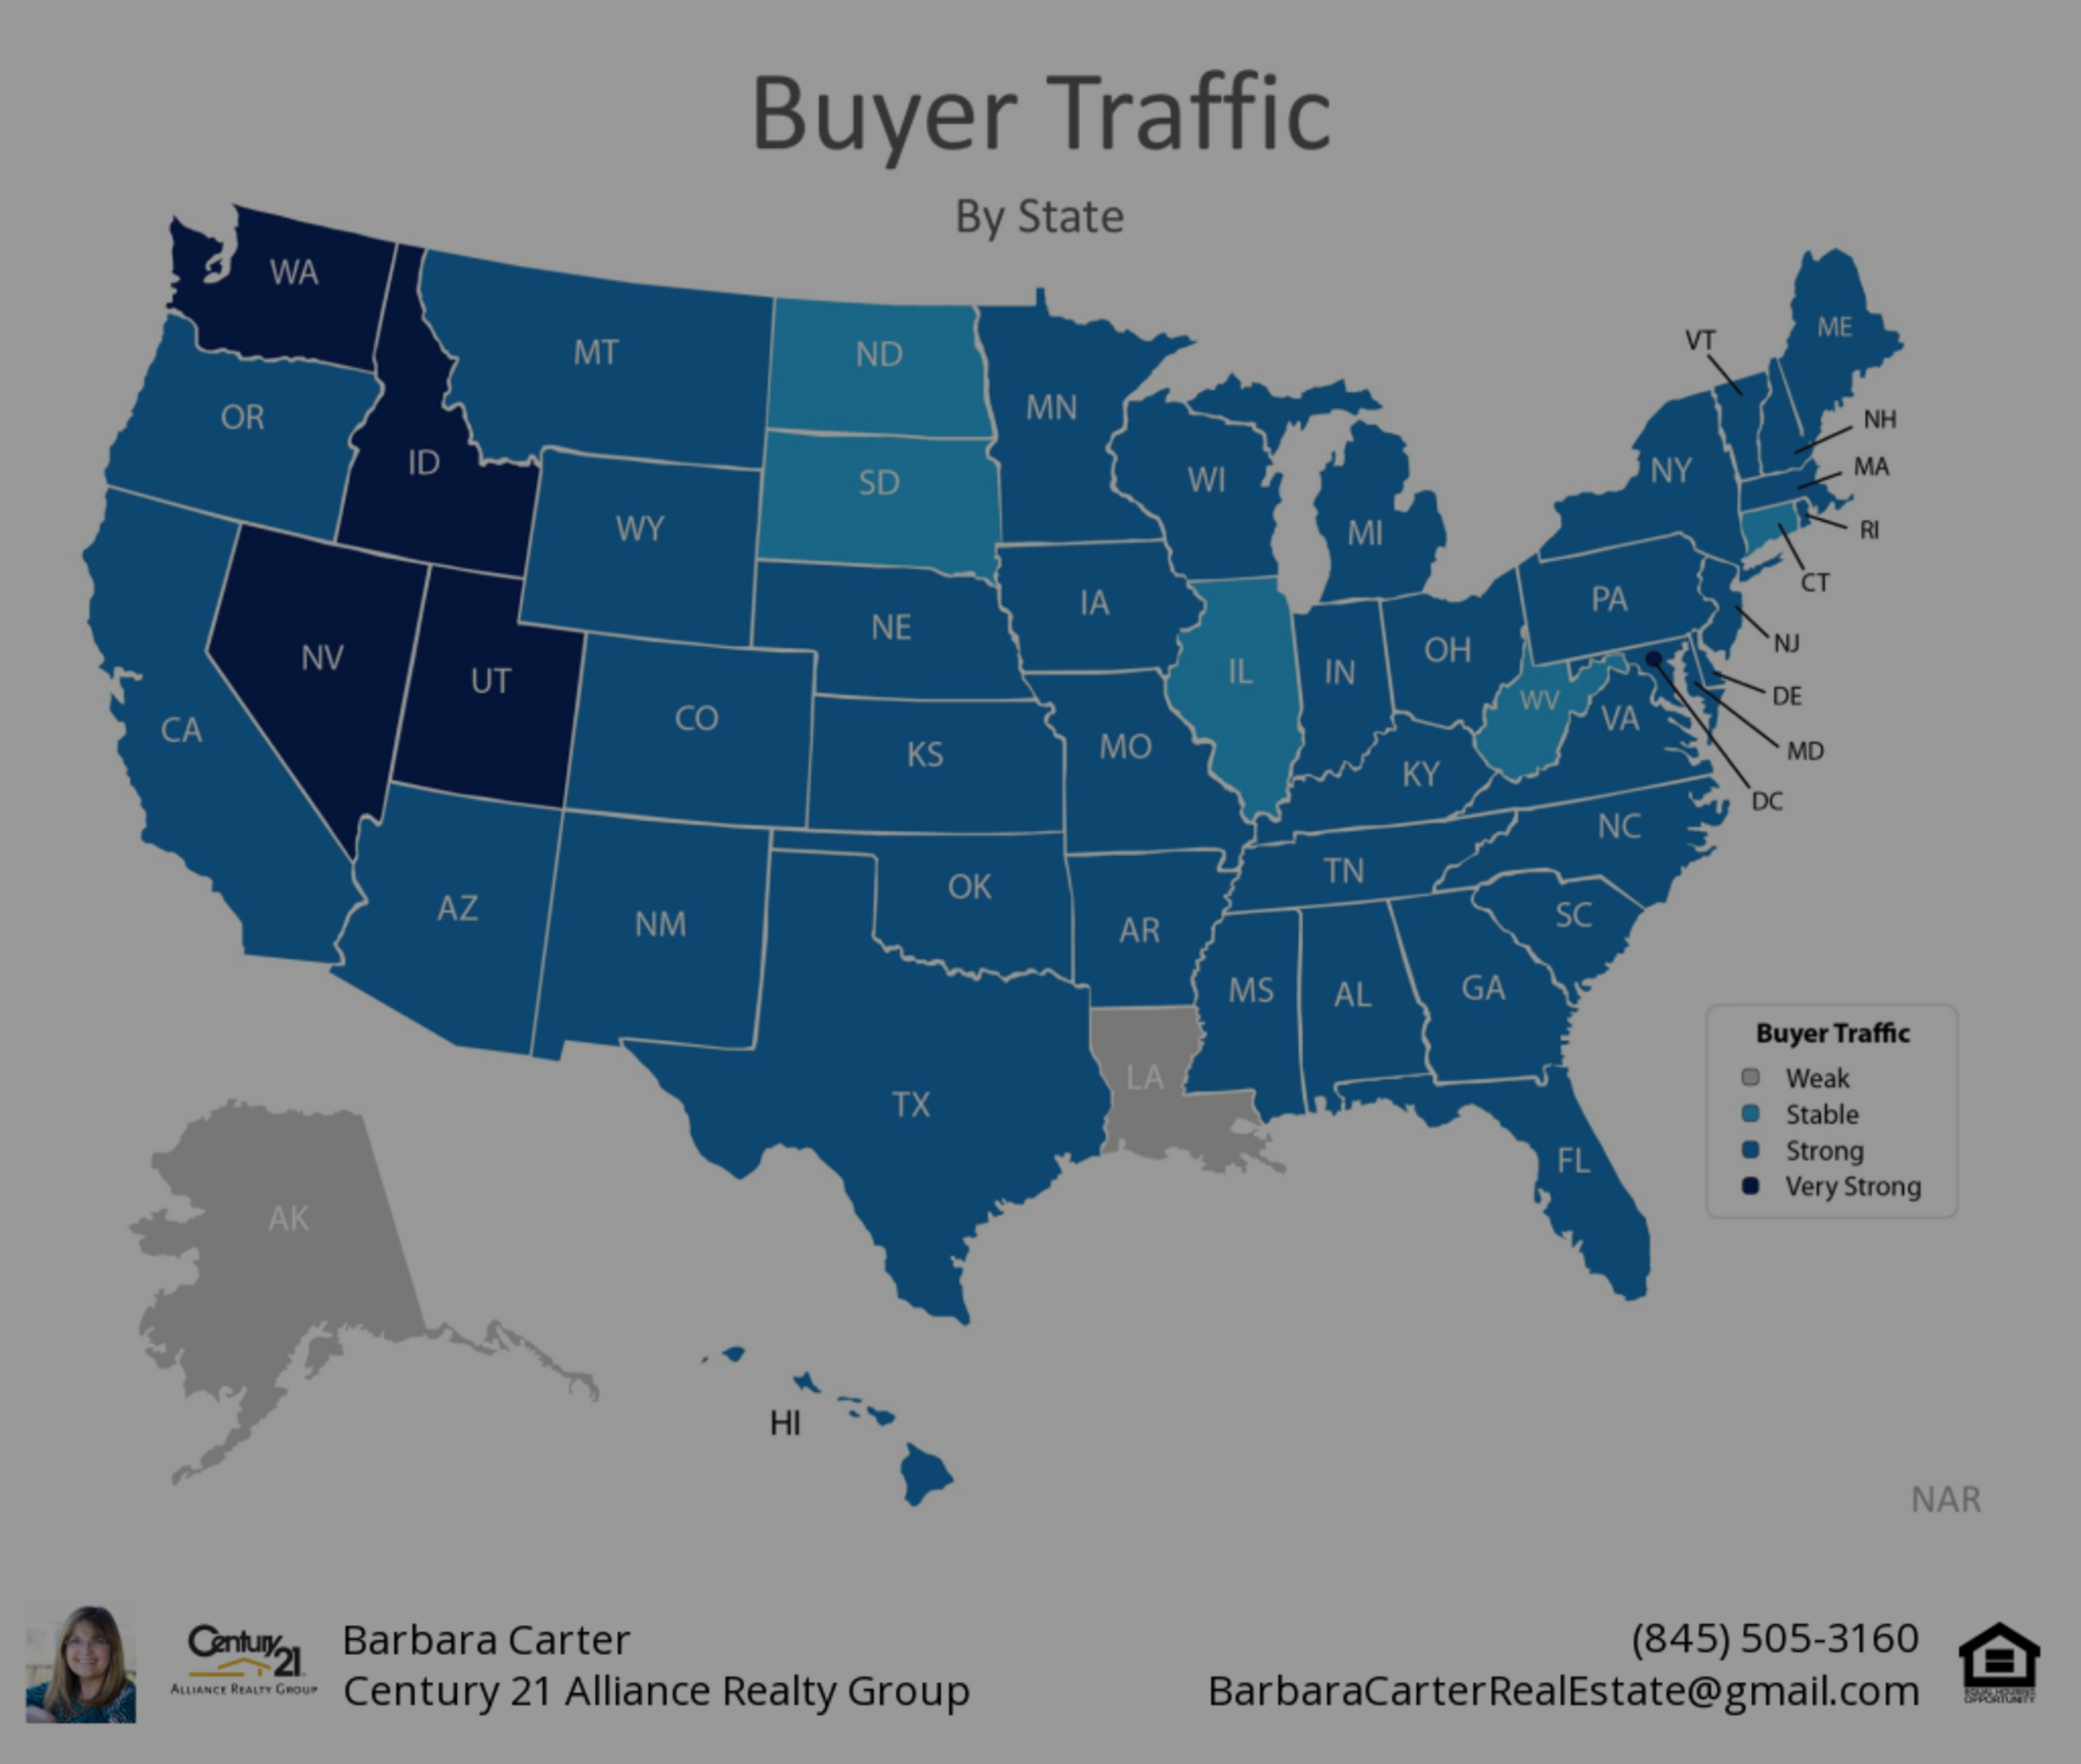 Latest National Association of REALTORS Data Shows Now Is a Great Time to Sell!